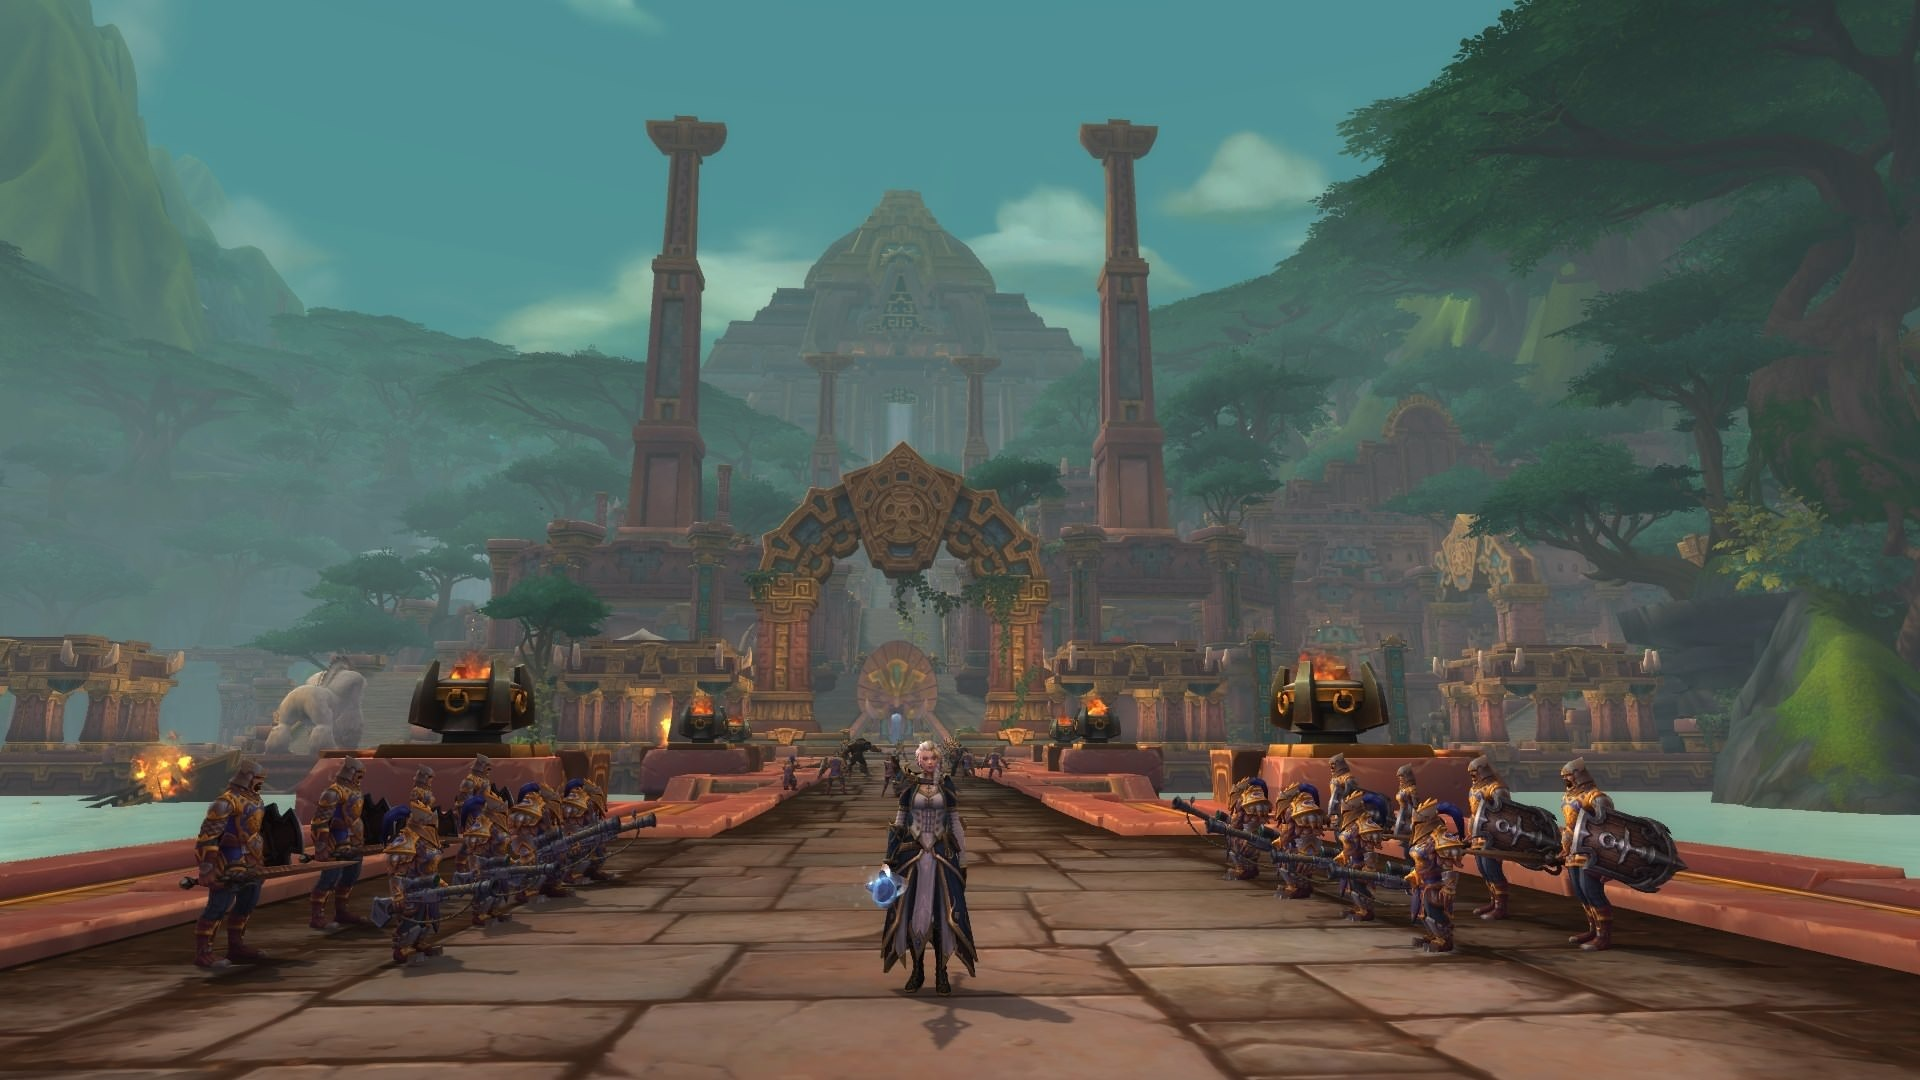 Upcoming Changes to WoW in Season 2 - Wowhead News